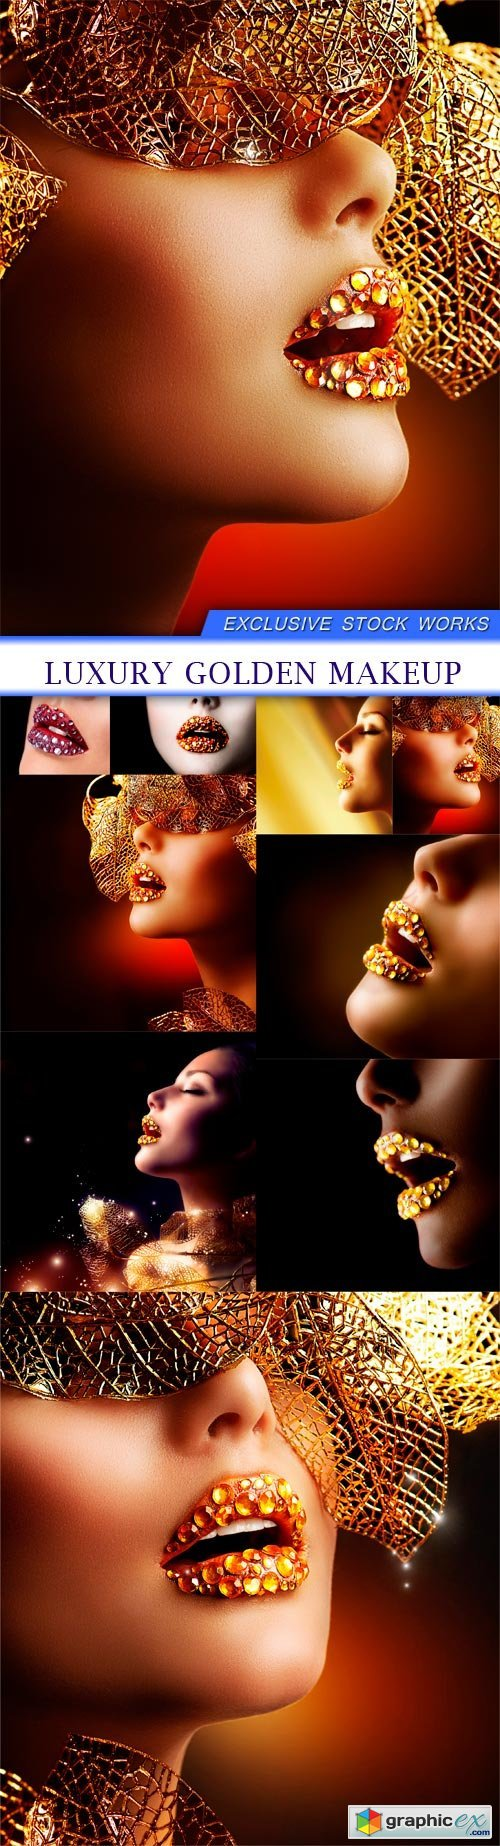 Luxury Golden Makeup 9X JPEG